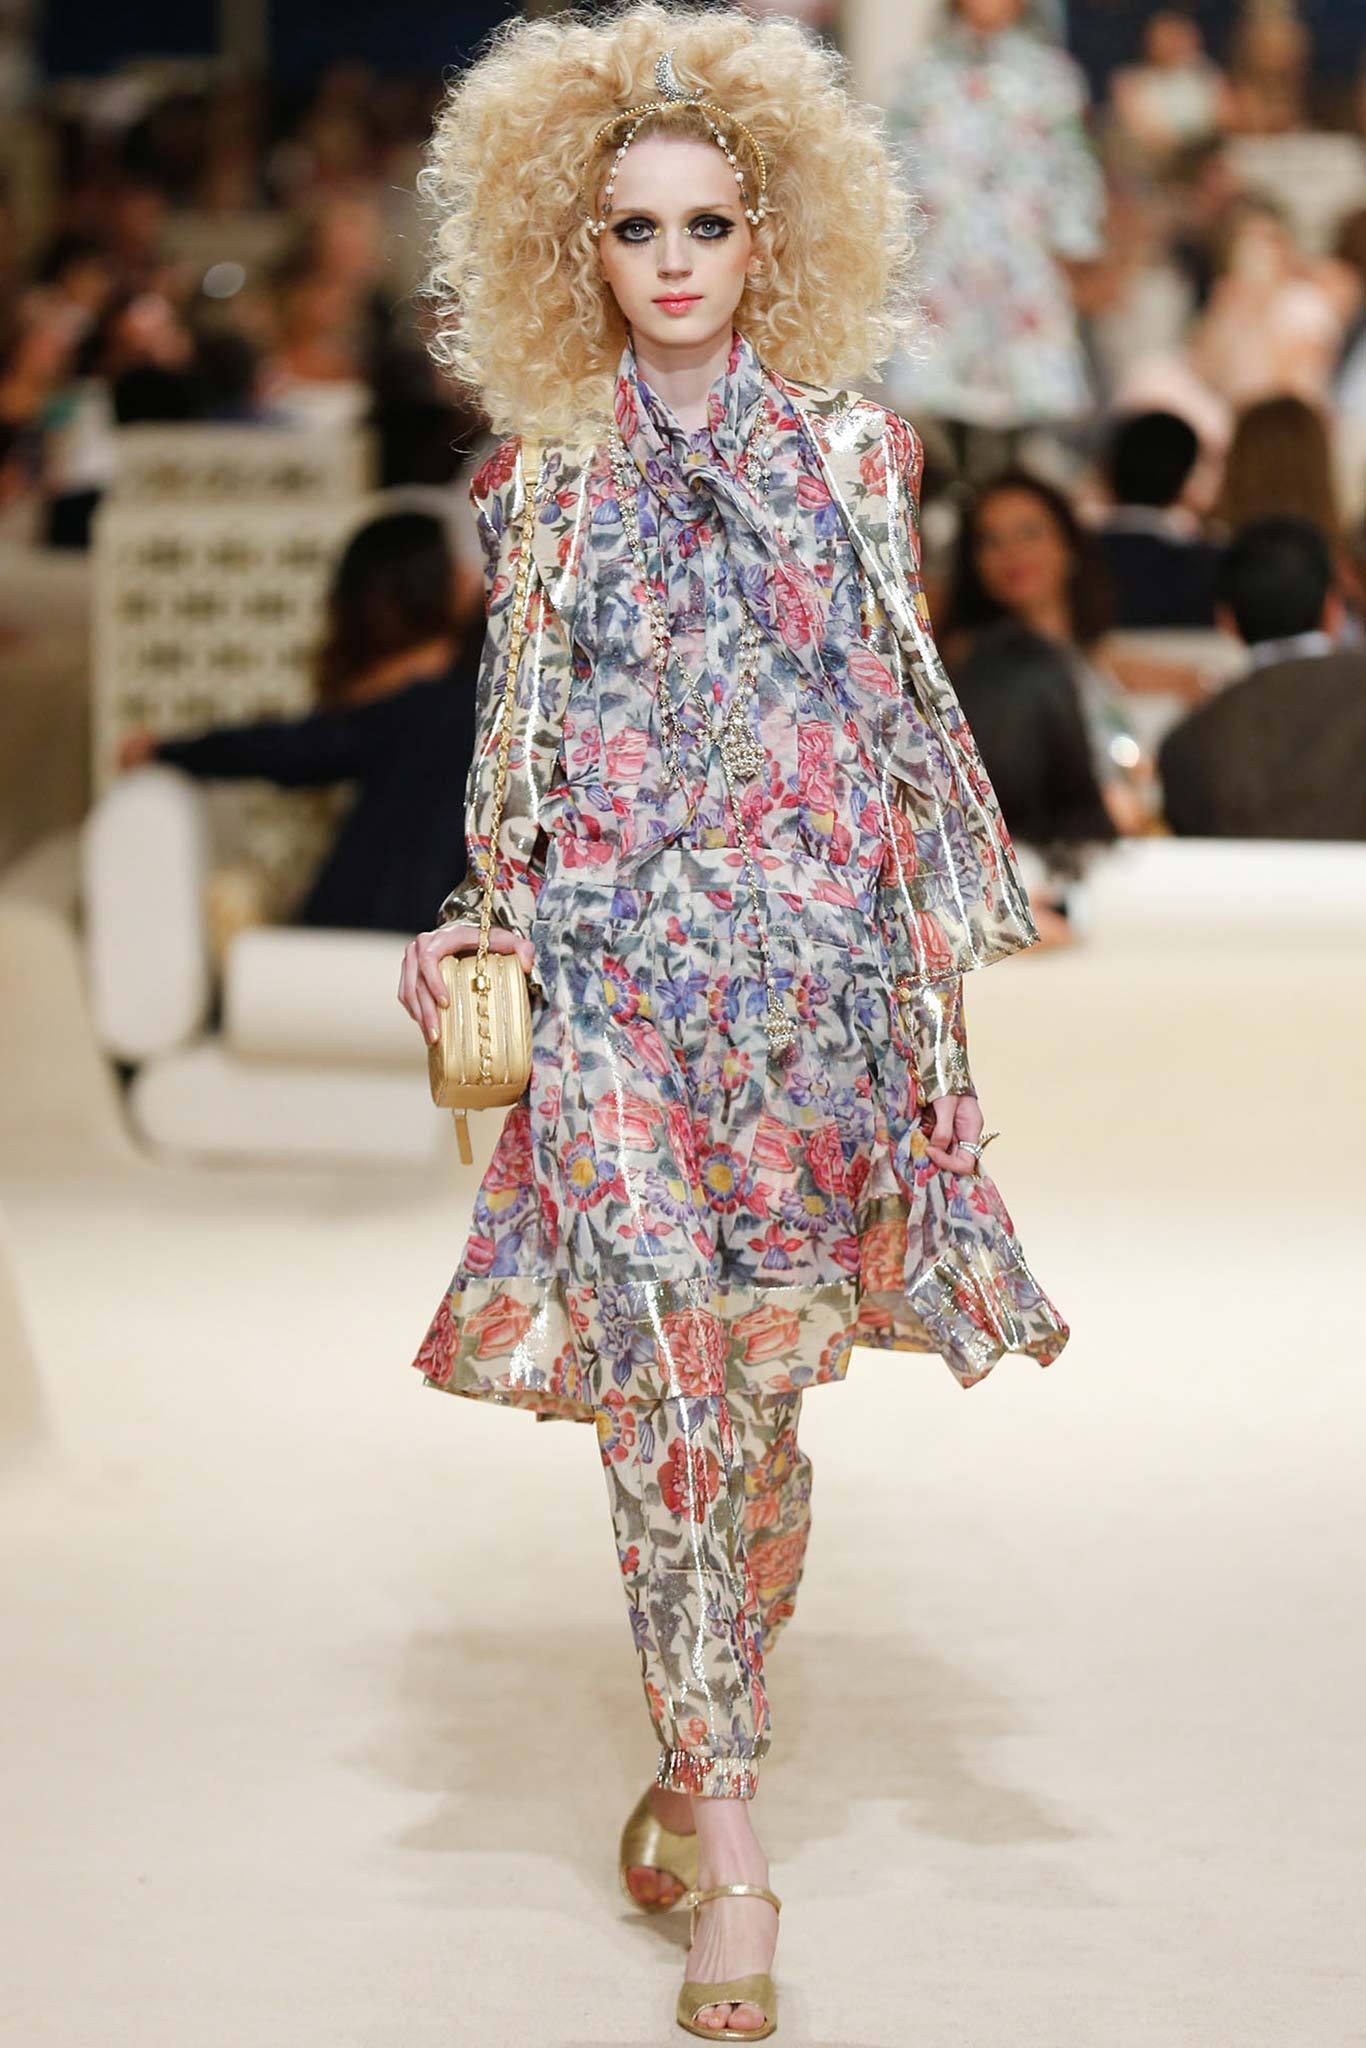 Esmerelda Seay-Reynolds | Chanel Cruise 2015 (Photography: Gianni Pucci / Indigitalimages.com via Style.com)